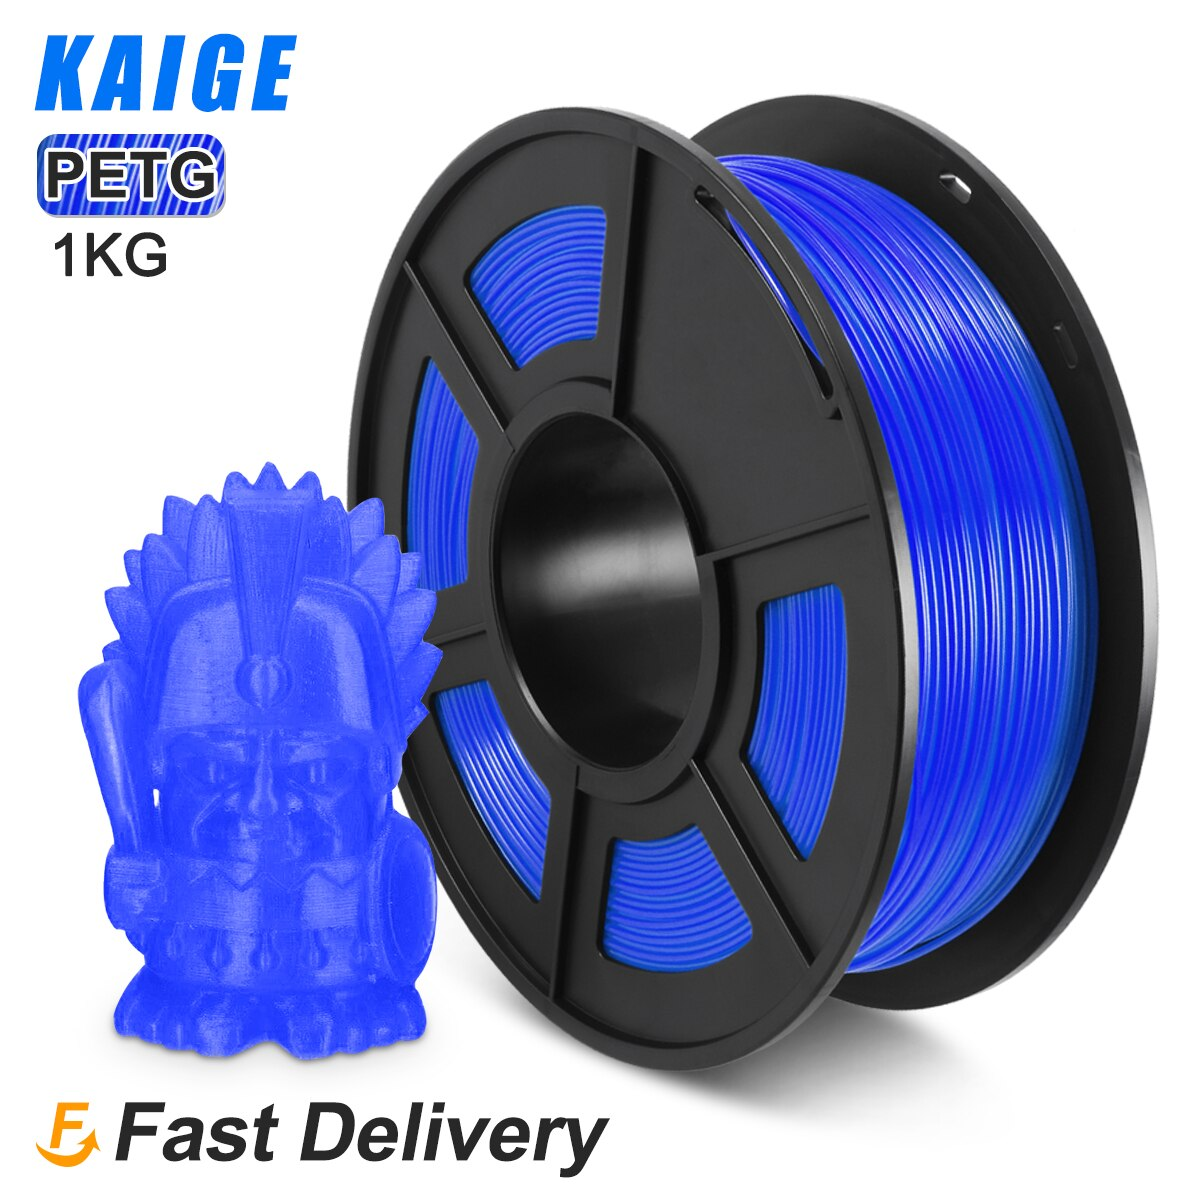 KAIGE 3D Printer Filament Petg Plastic 1.75mm Diameter 100% No bubble Tolerance +-0.02MM Petg  blue Bright Color For 3D Pen